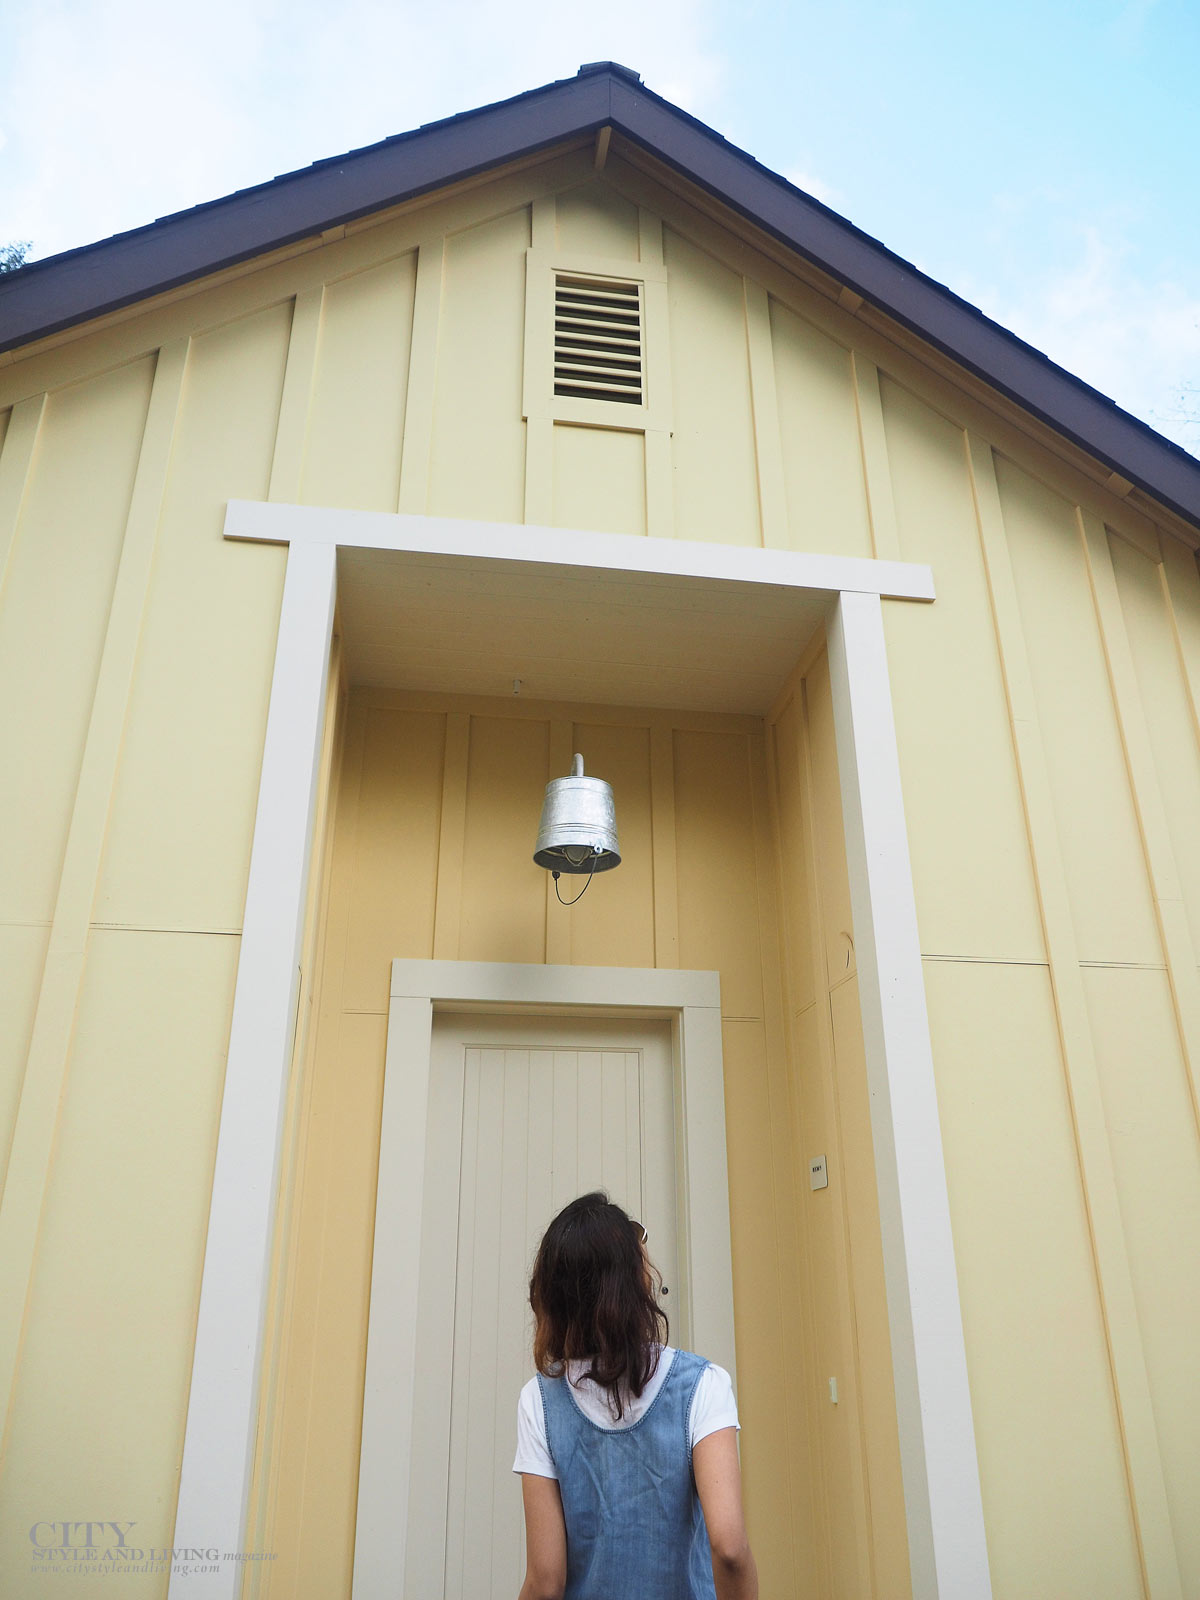 City Style and Living The Editors Notebook style blogger jean dress over a white tshirt at farmhouse inn  in sonoma